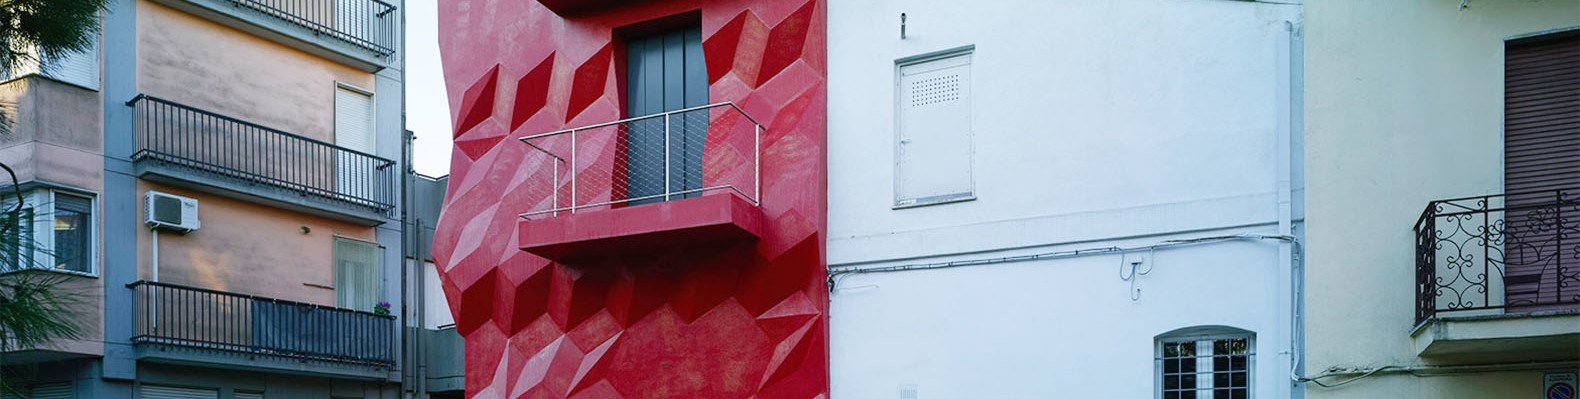 Gentle genius: bright red jeweled facade slashes Italian home\'s ...